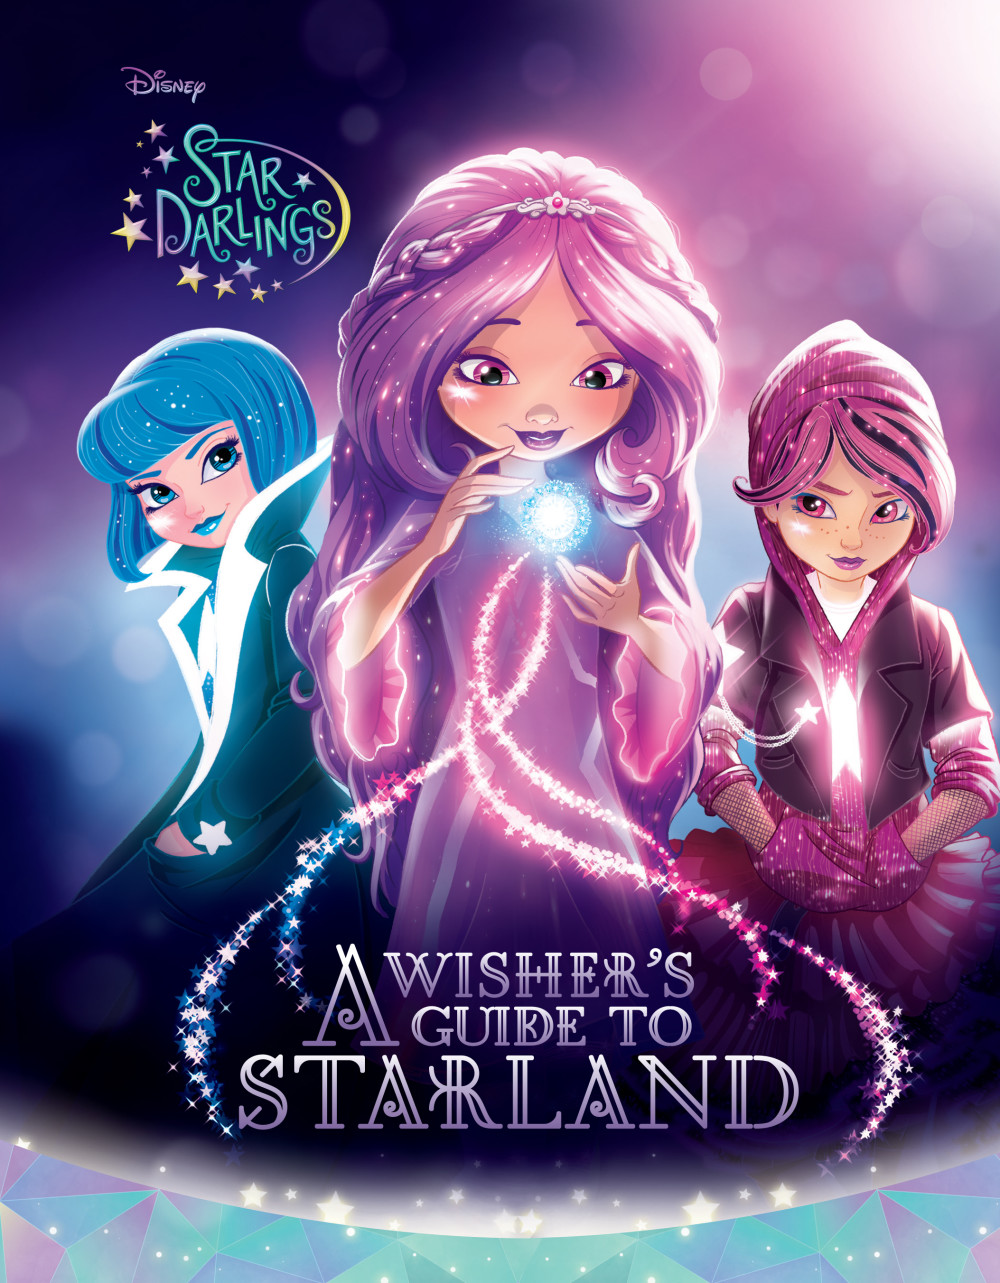 Star Darlings: A Wishers Guide to Starland